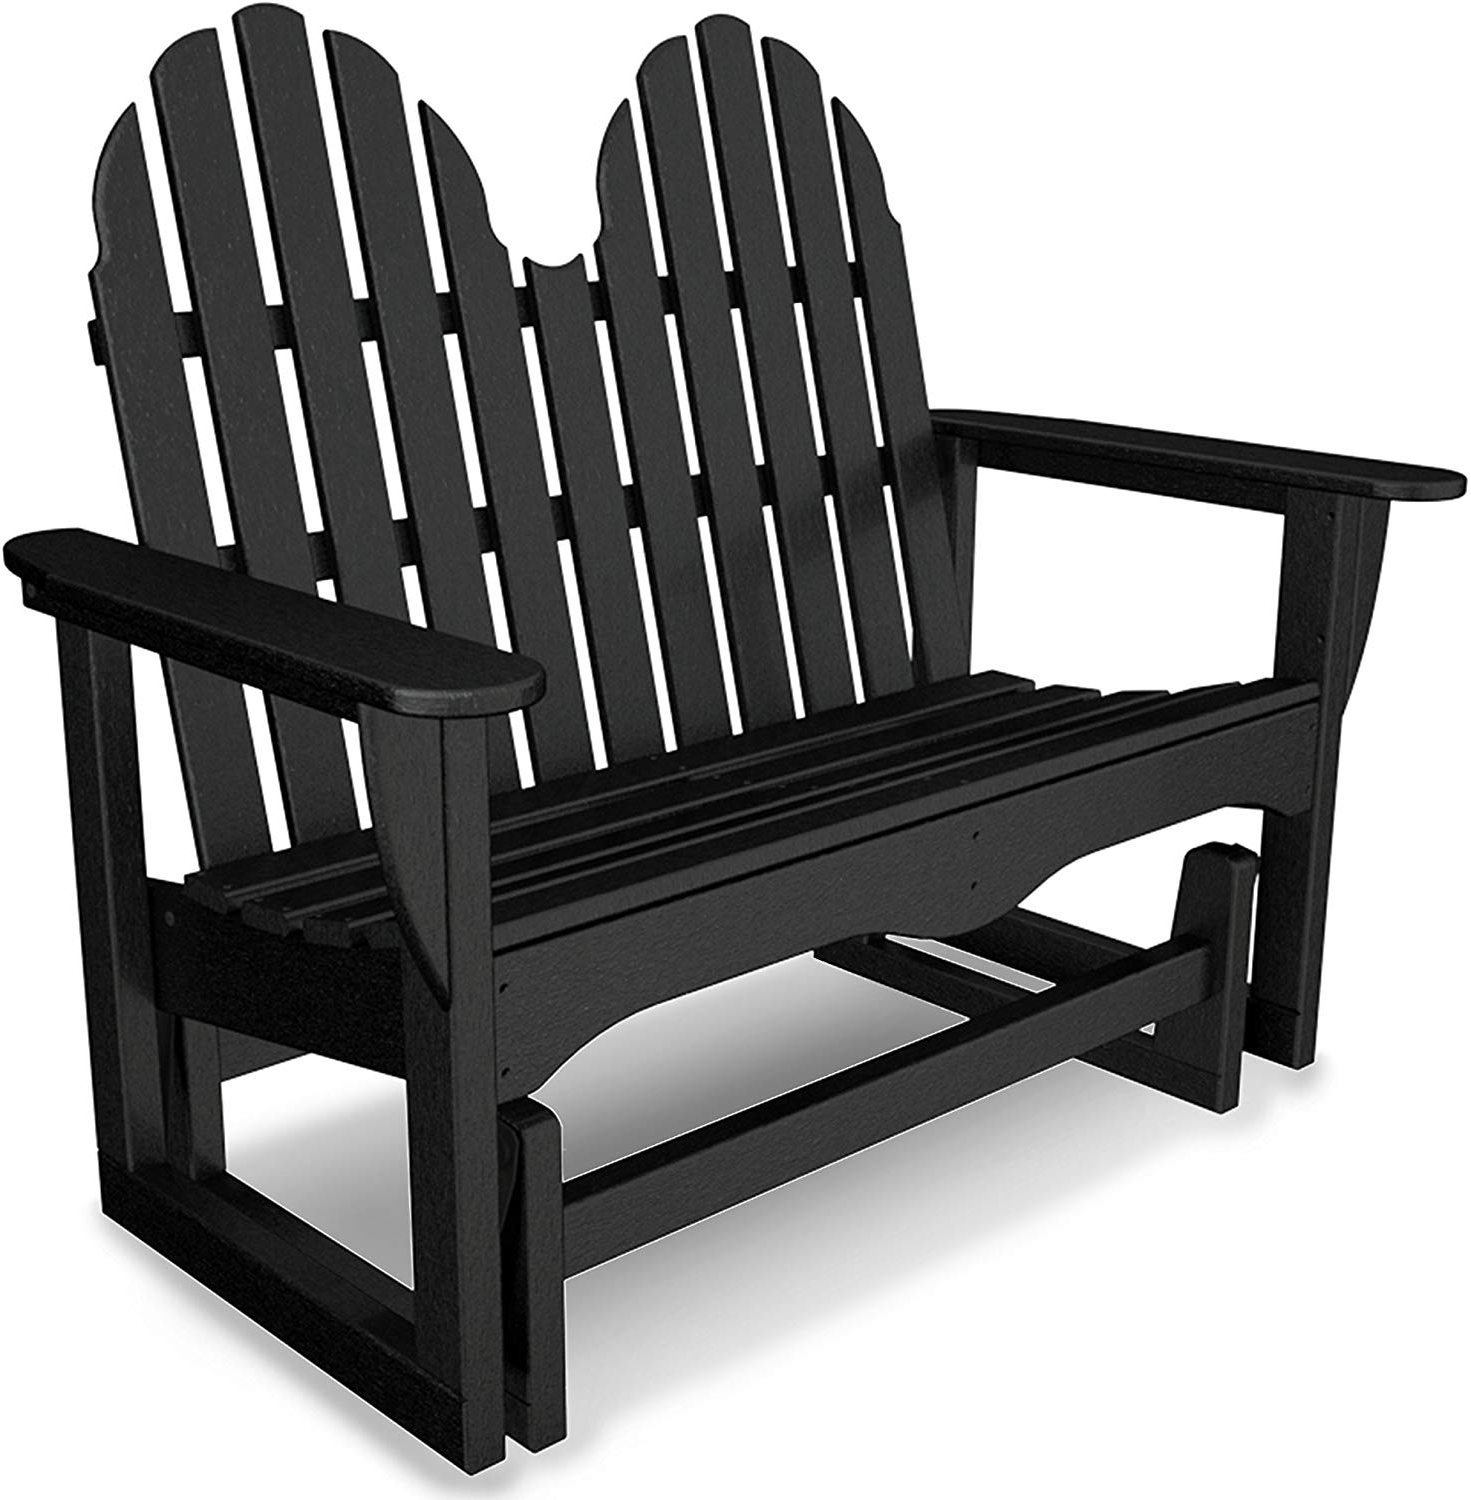 Favorite Polywood Adirondack 48 Inch Glider, Black Intended For Classic Adirondack Glider Benches (Gallery 3 of 30)